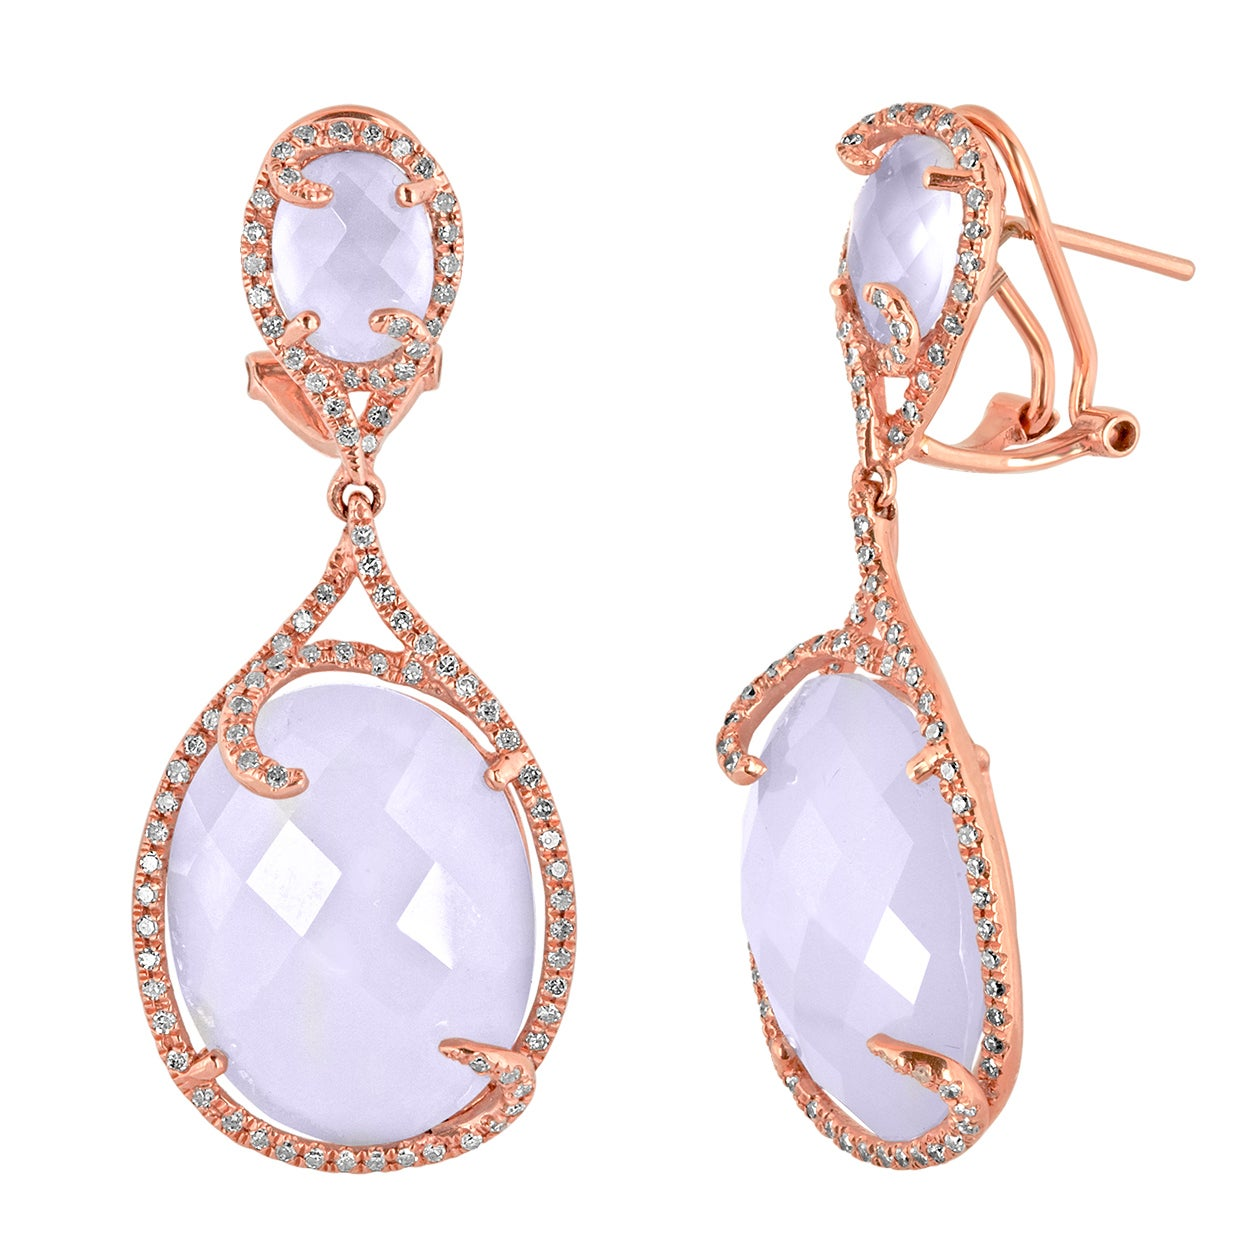 25.71 Carats Chalcedony and Diamond Gold Earrings